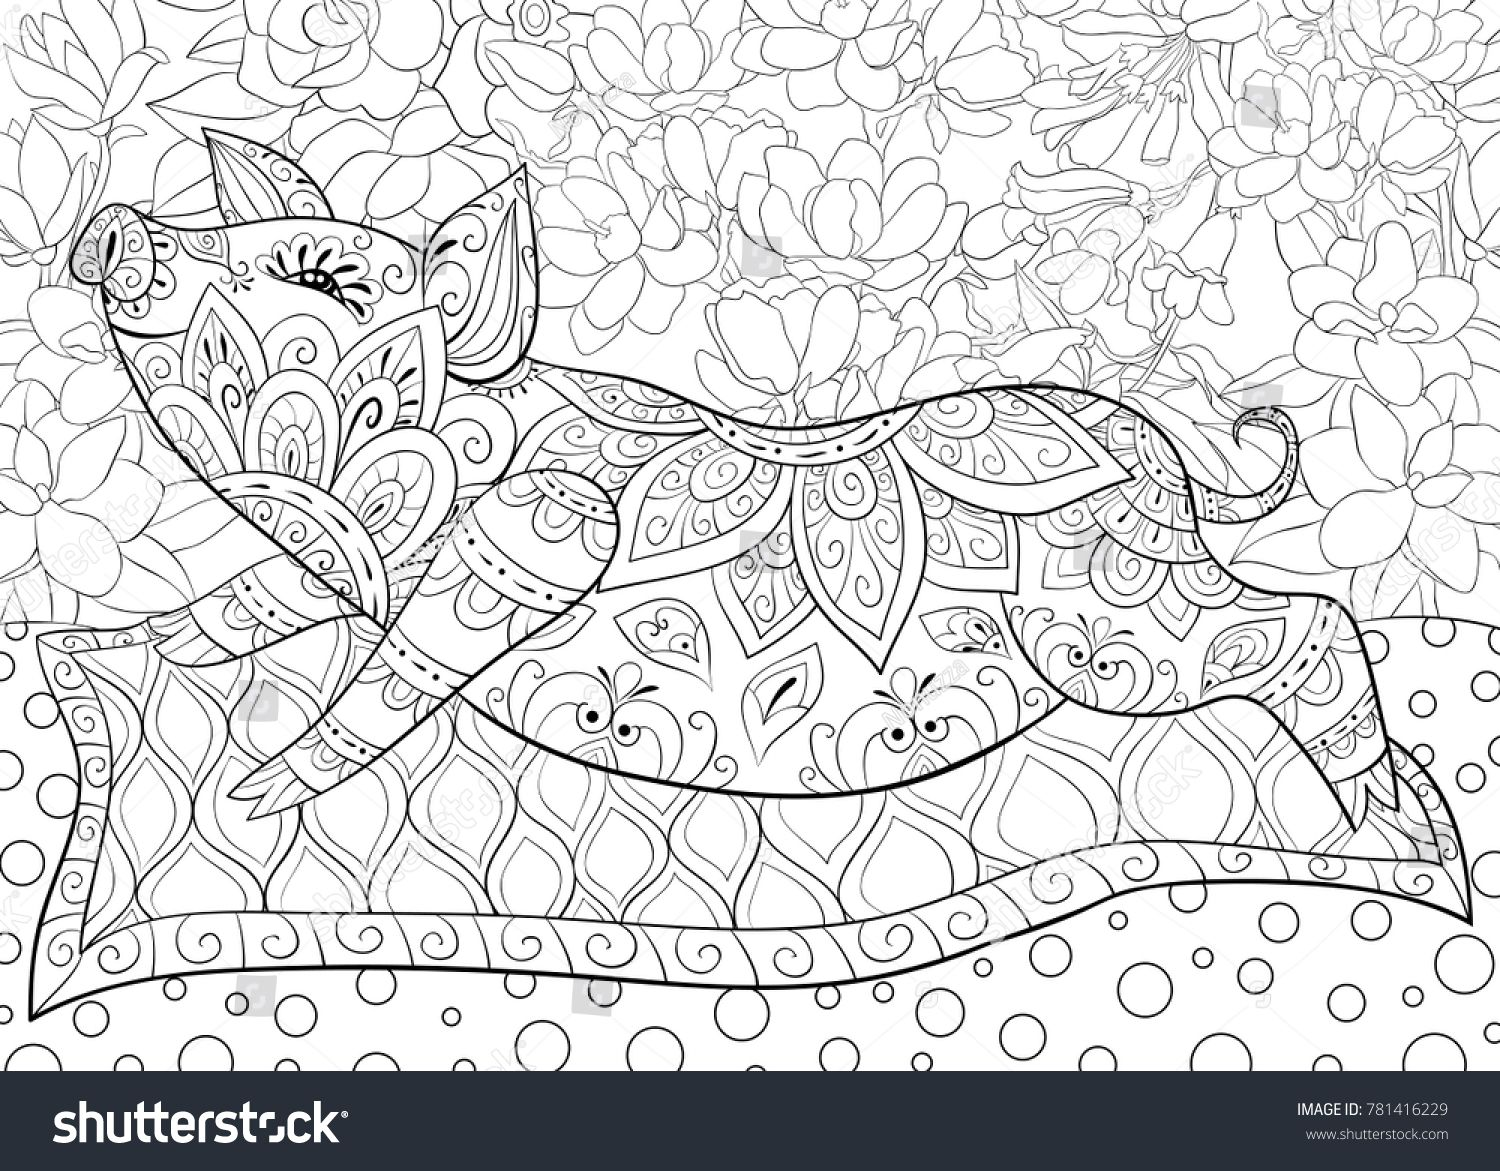 adult coloring bookpage a cute pig on the pillow for